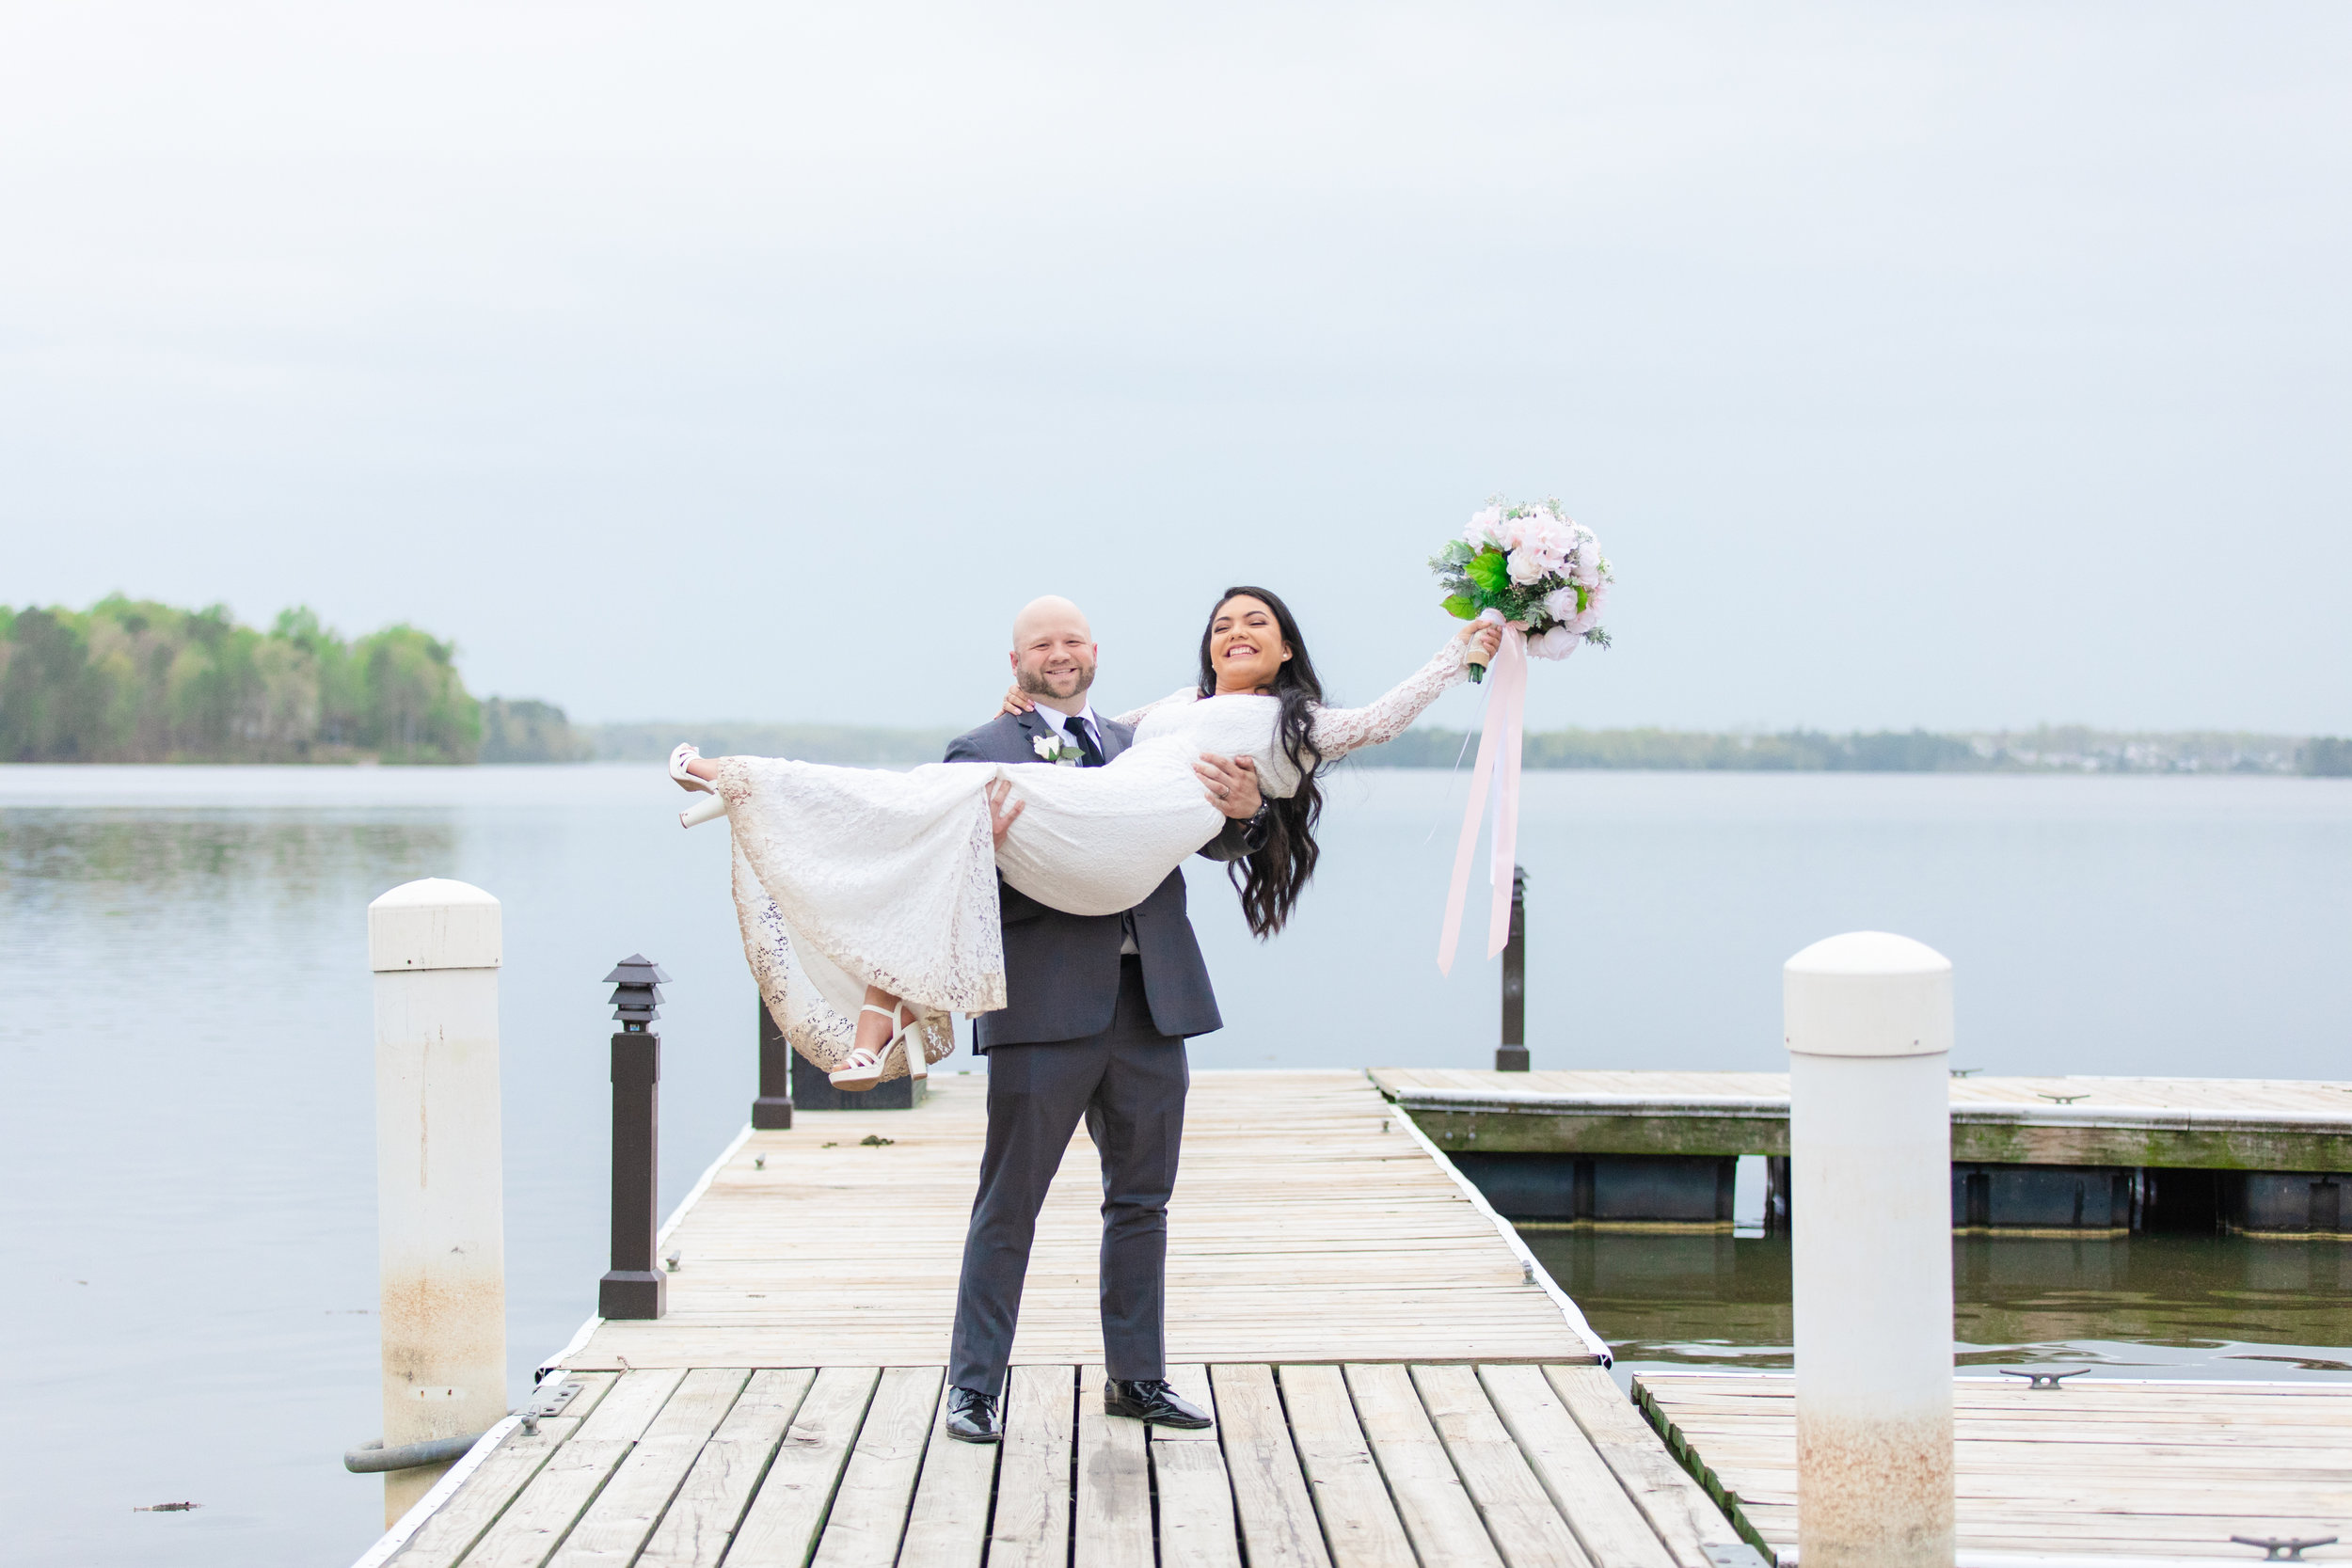 mjmp boathouse sunday park wedding photo-67.jpg